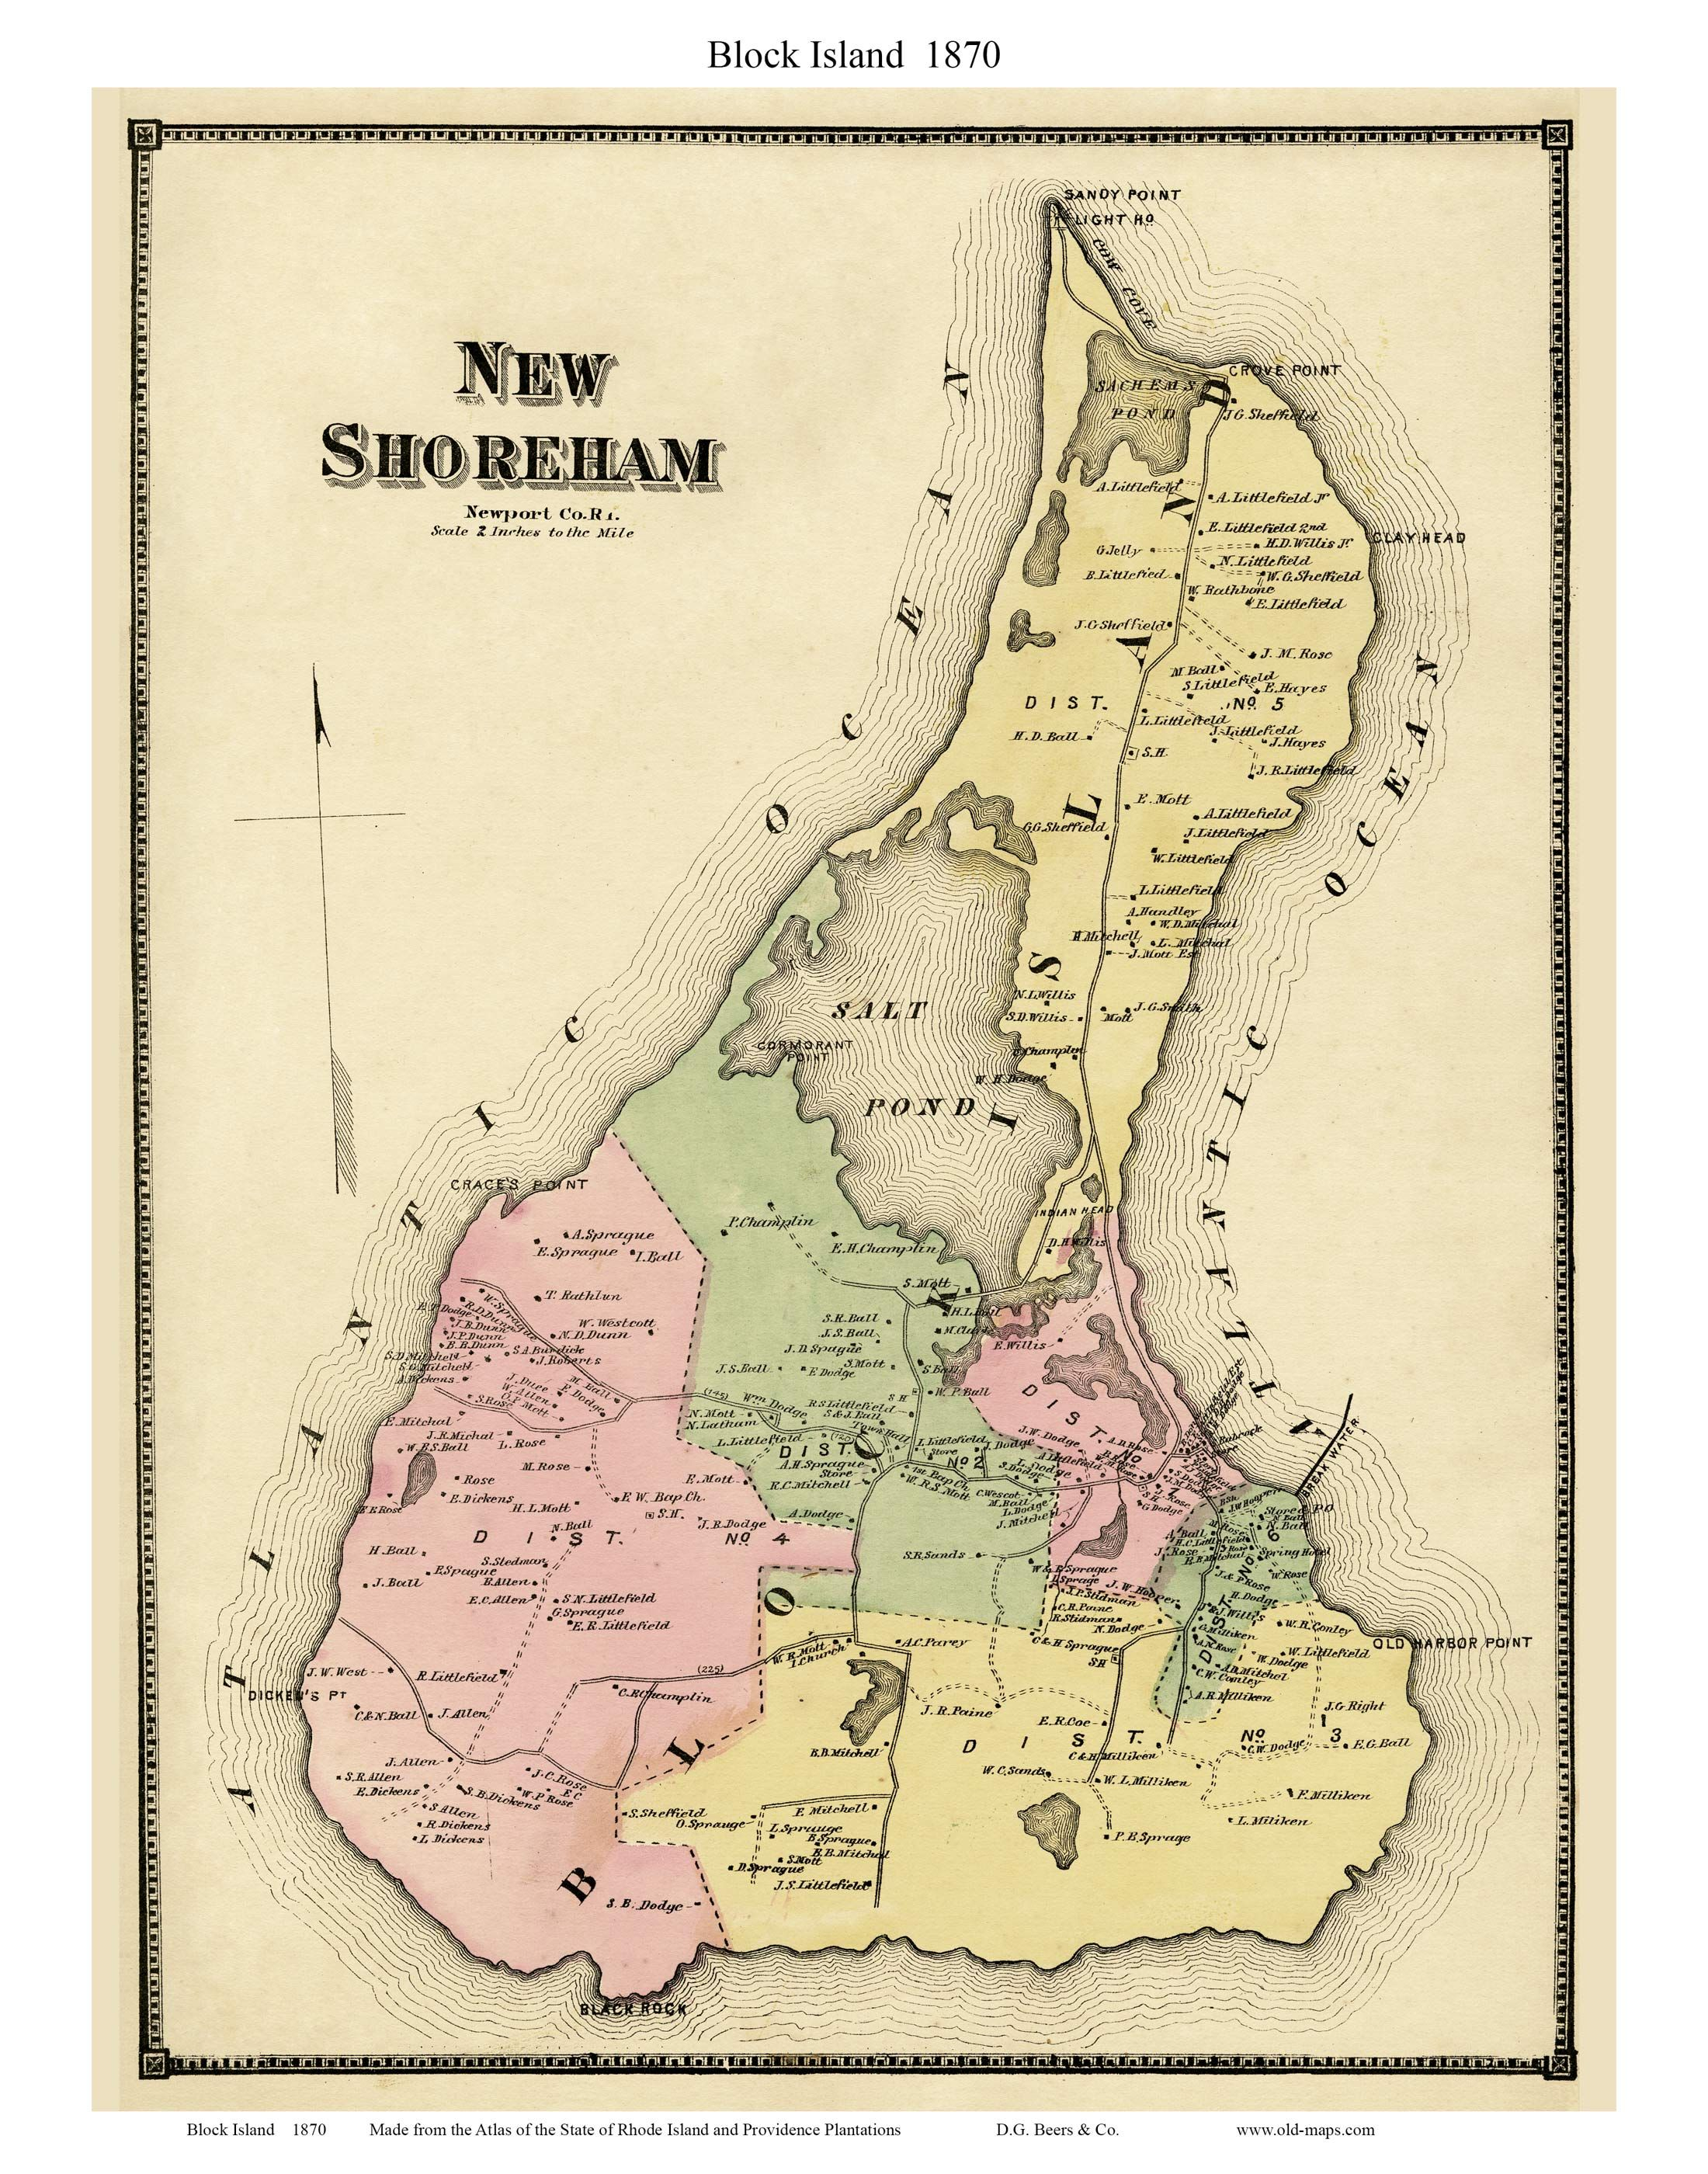 1870 Map of Block Island published by D.G. Beers. This is